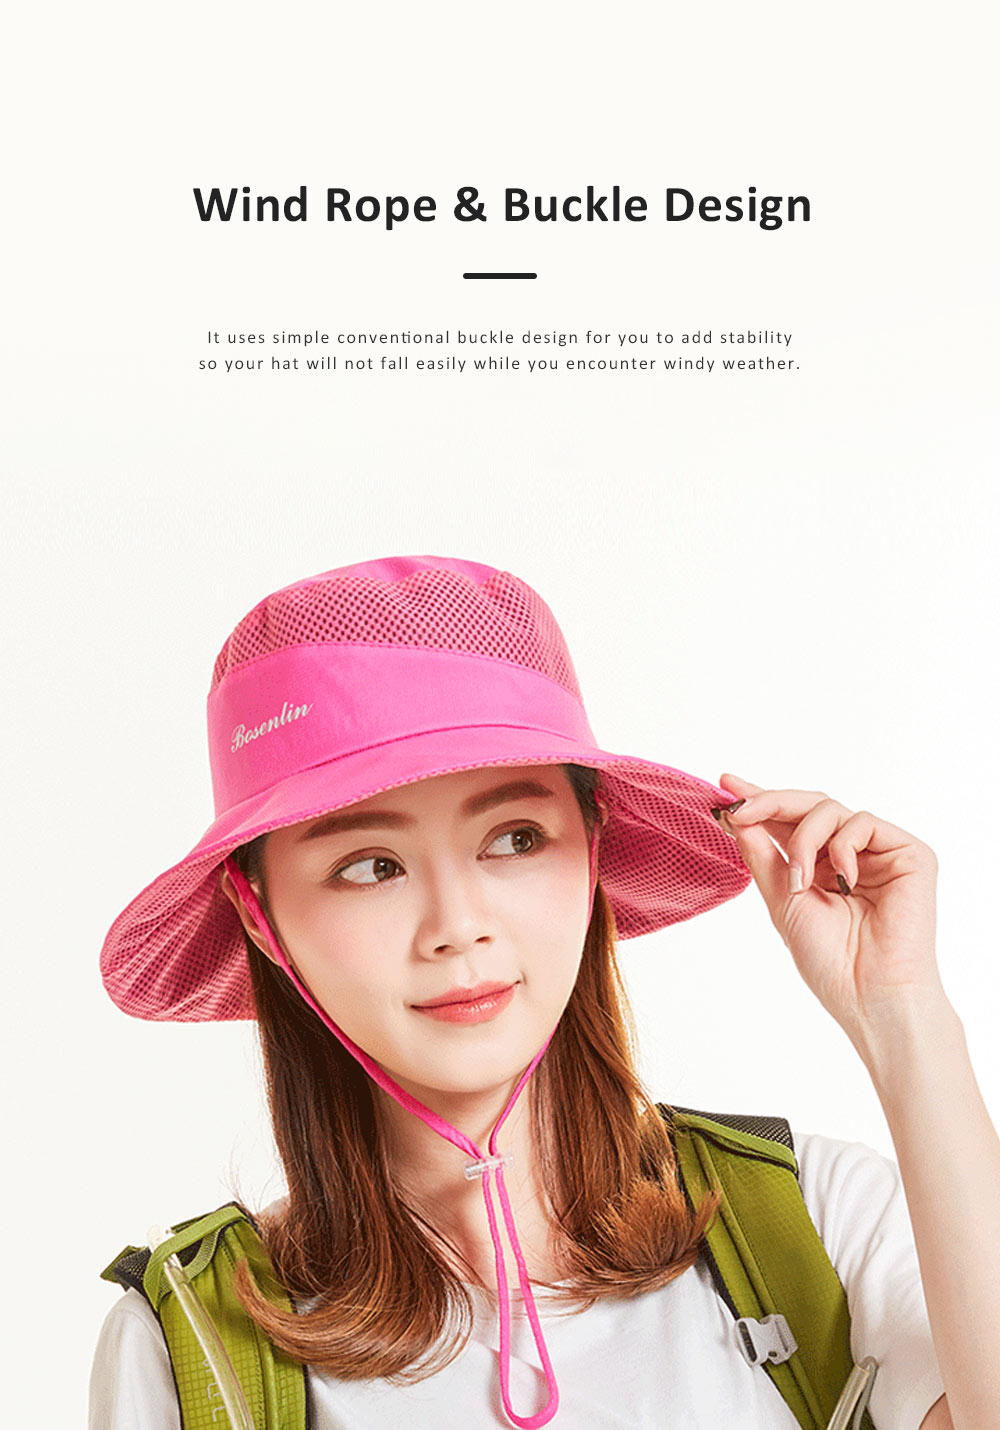 Outdoor Sunhat for Outdoor Enthusiast, Colorful Option Flat Brim Fisherman Hat, Wind Rope Buckle Quick Drying Flat Brim Cap 4